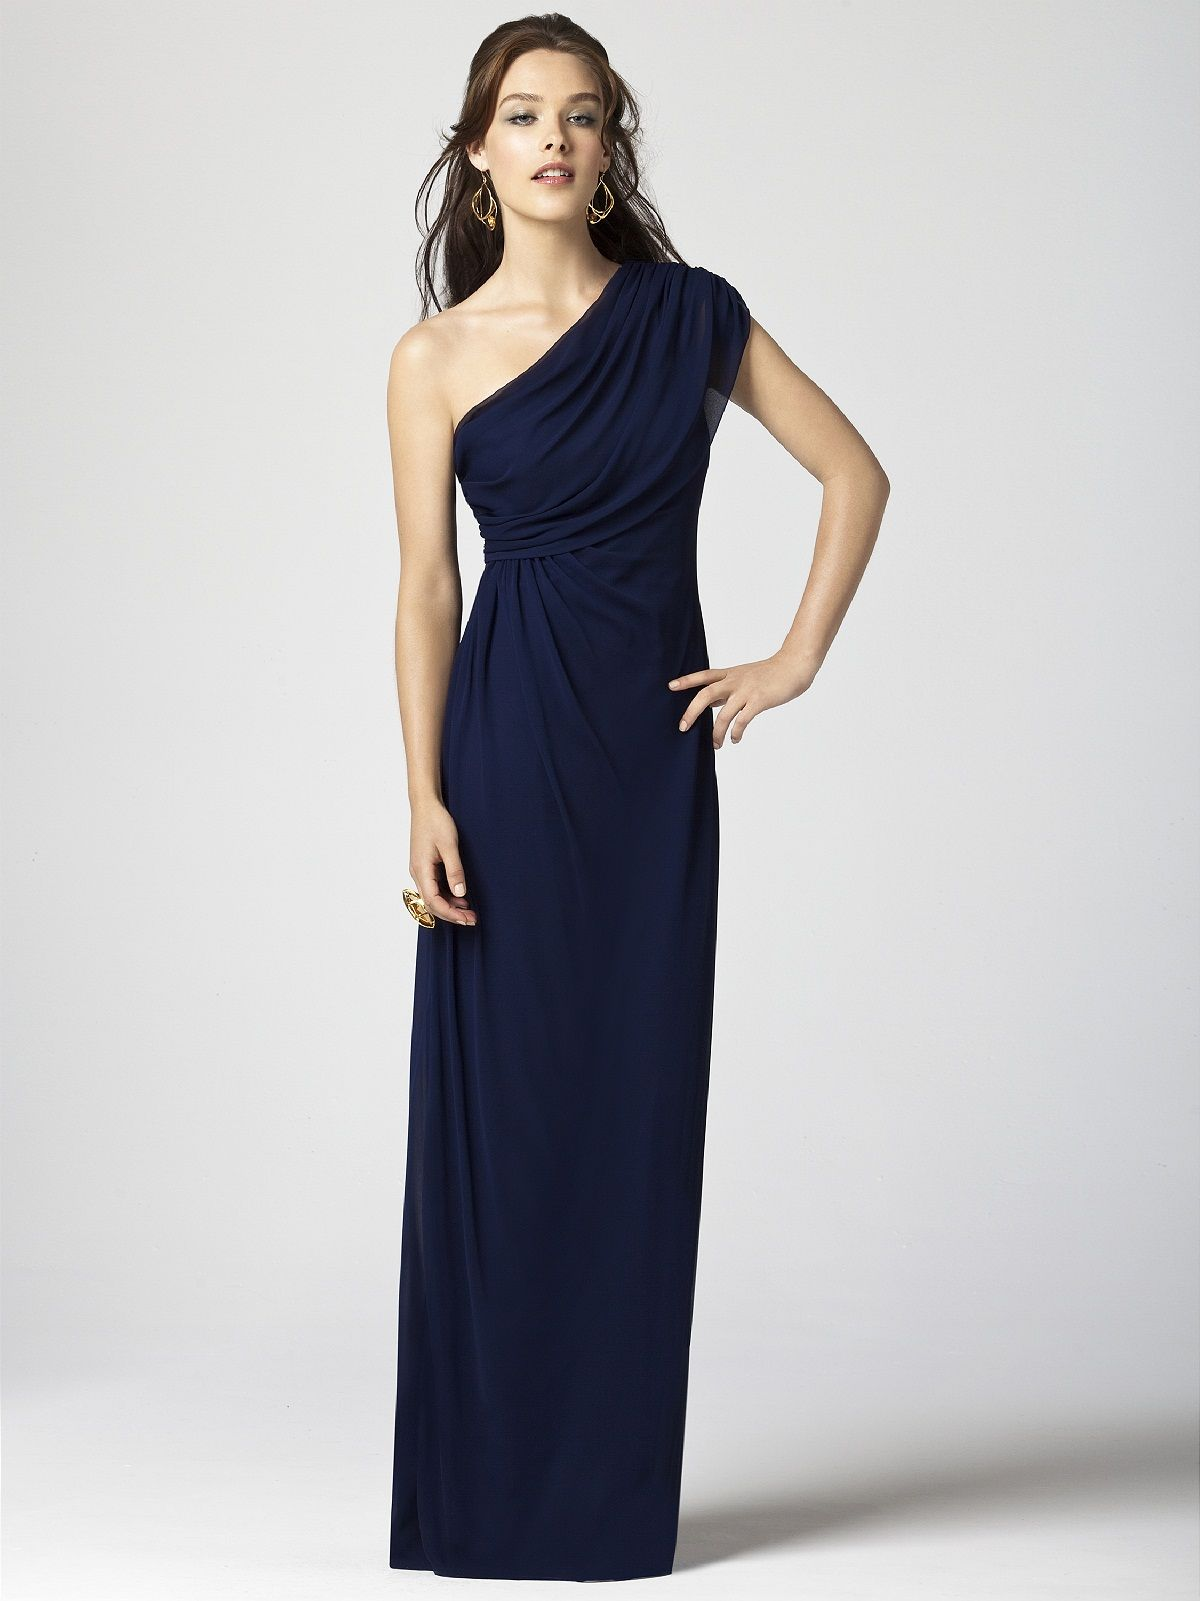 Dessy collection style 2858 chiffon gown dessy collection style 2858 dessy bridesmaidnavy bridesmaid dressesbridesmaid ombrellifo Gallery